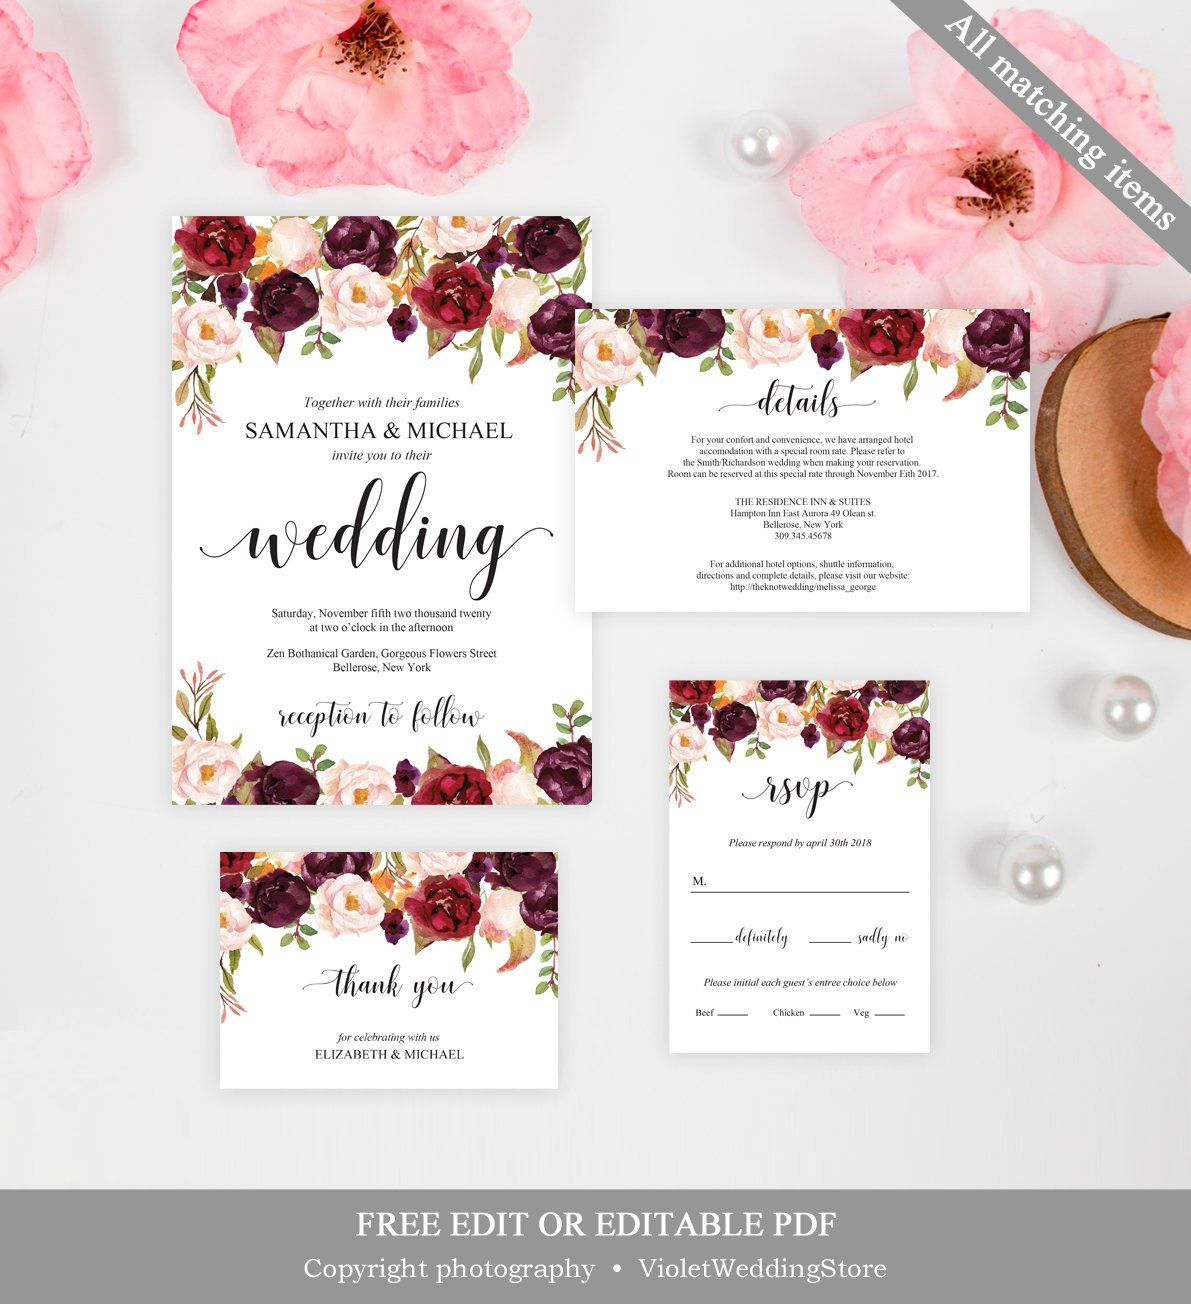 Marsala Wedding Invitation Template. Printable Wedding Invitation